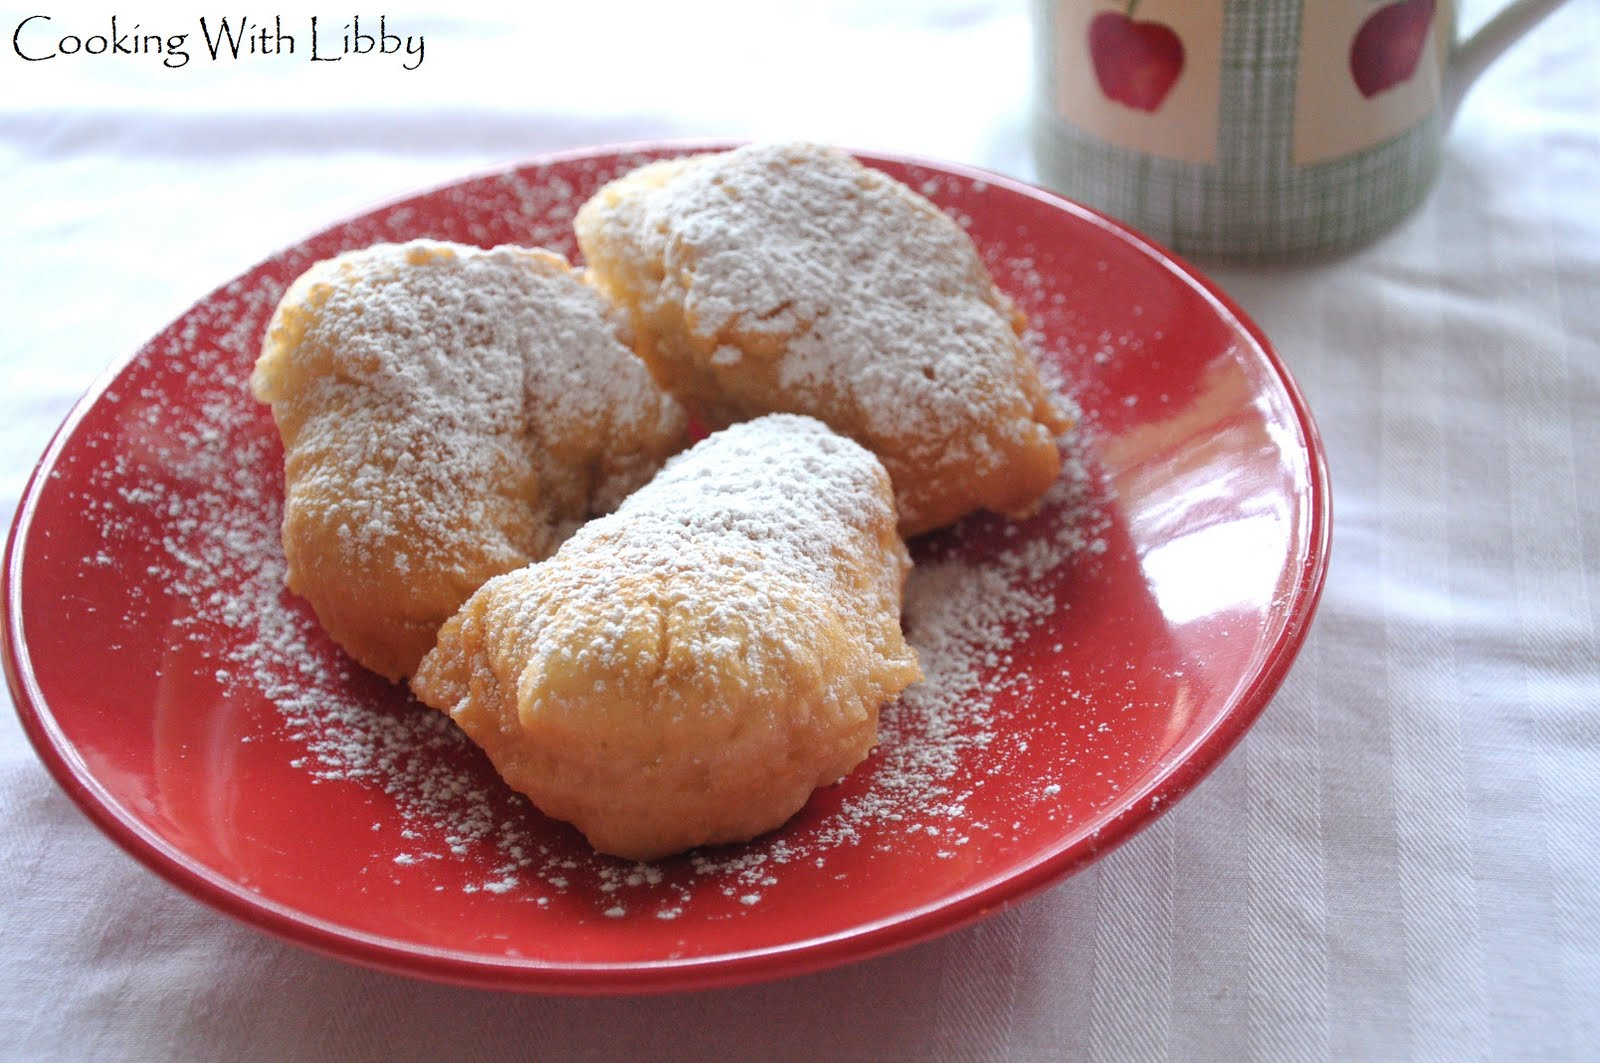 Easy Homemade Beignets | Cooking With Libby